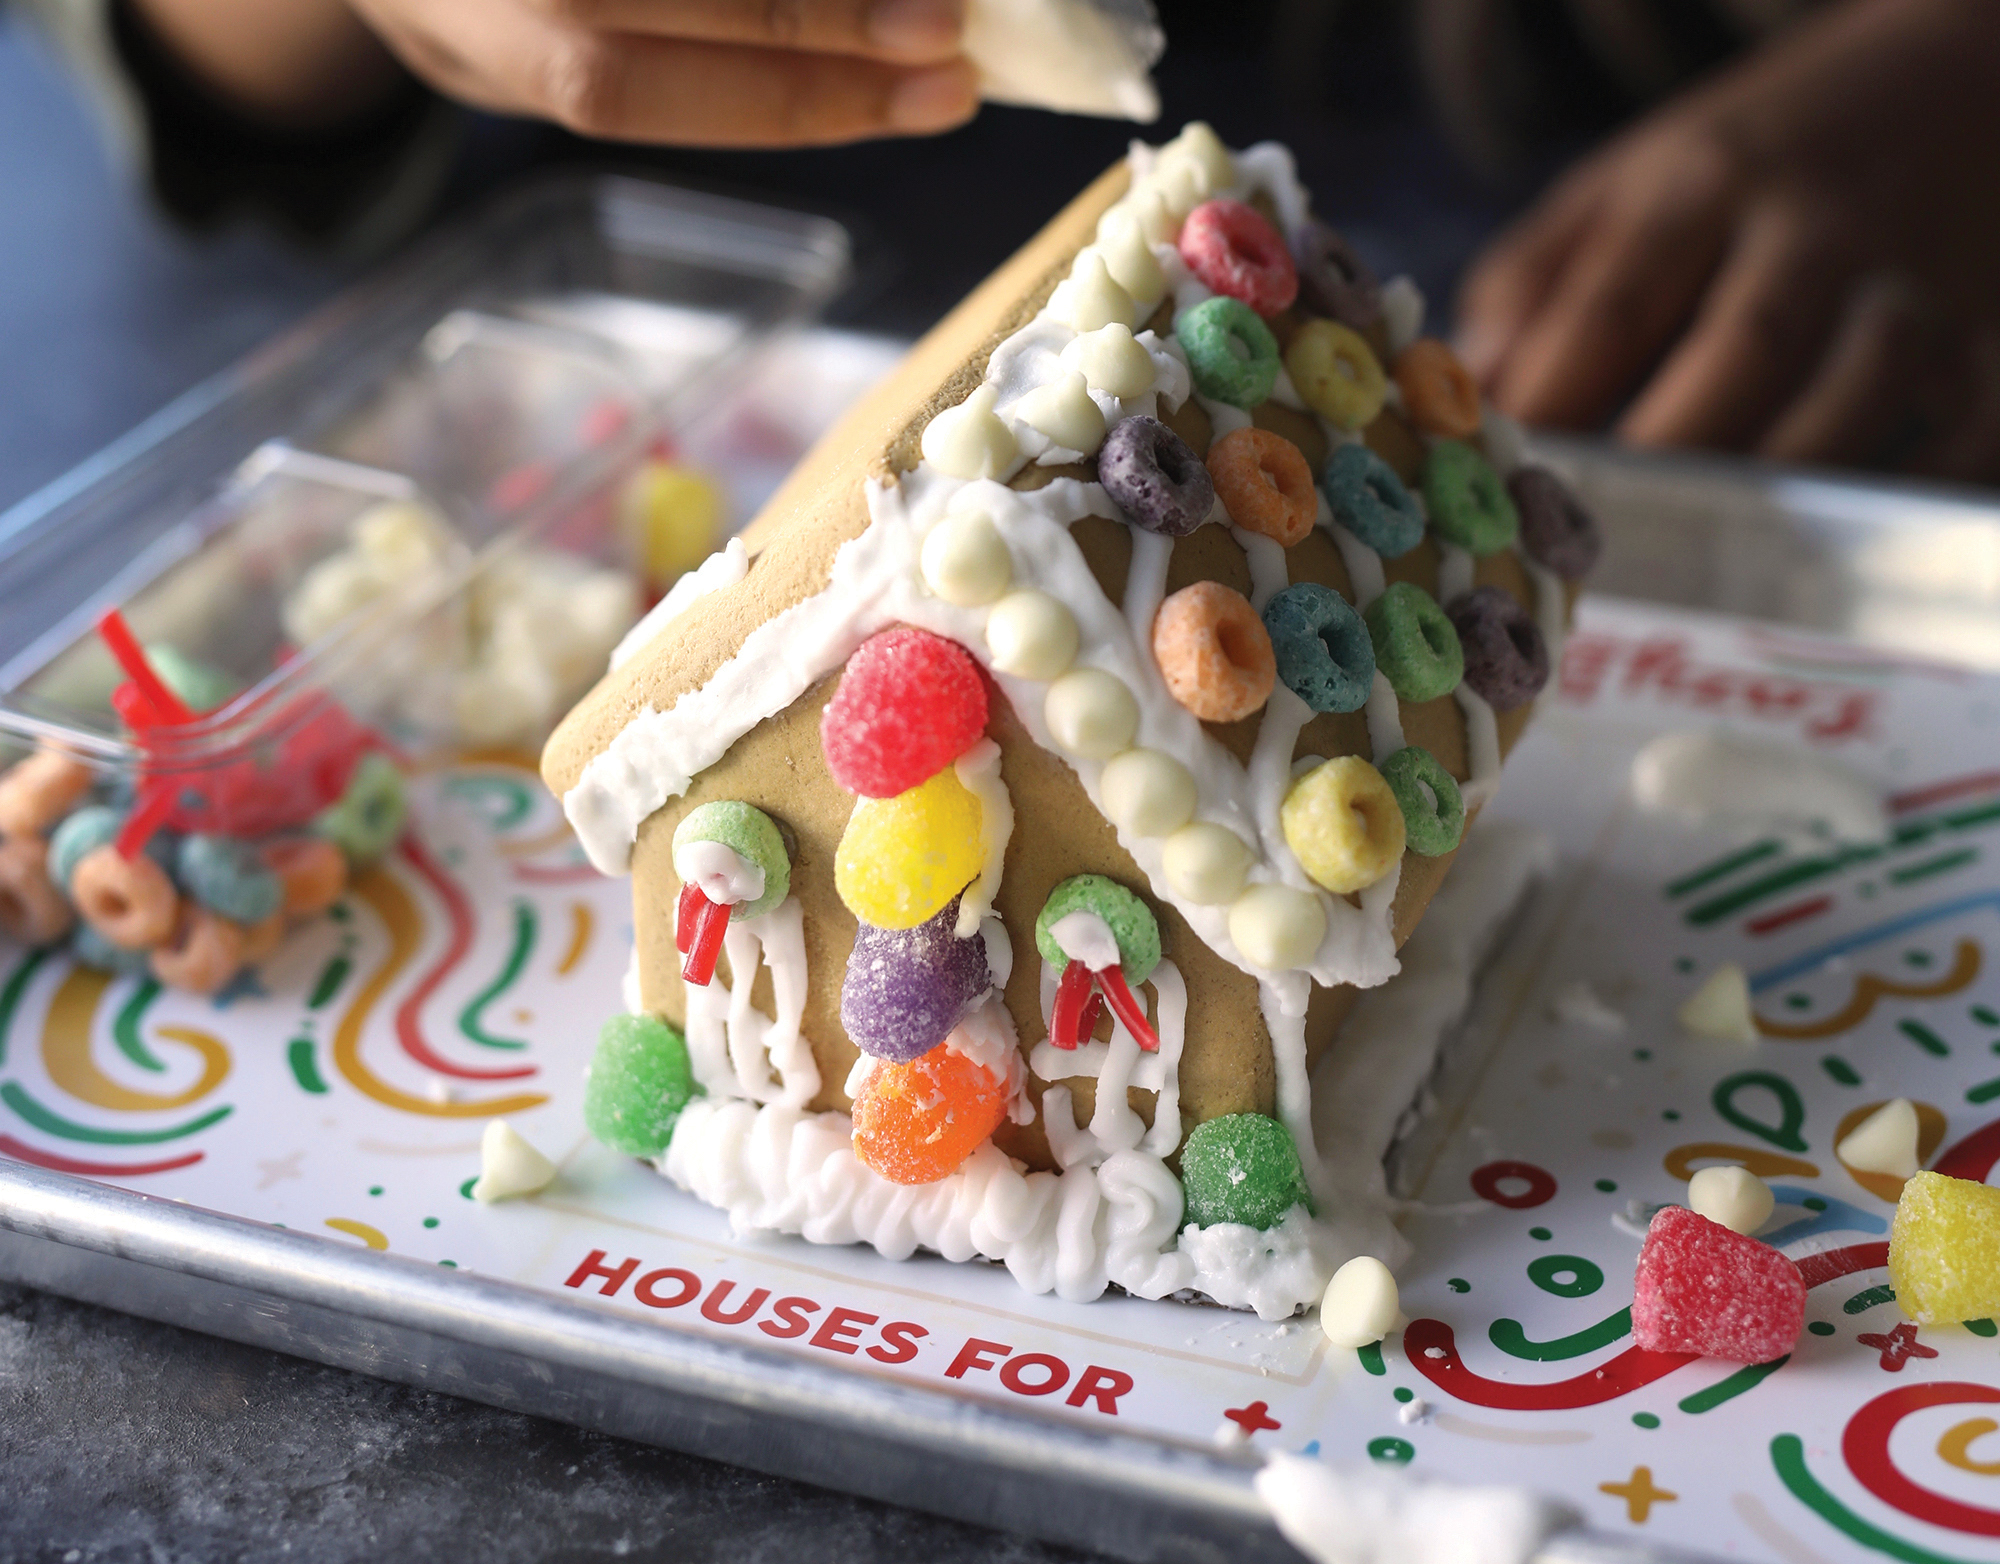 putting icing on a gingerbread house